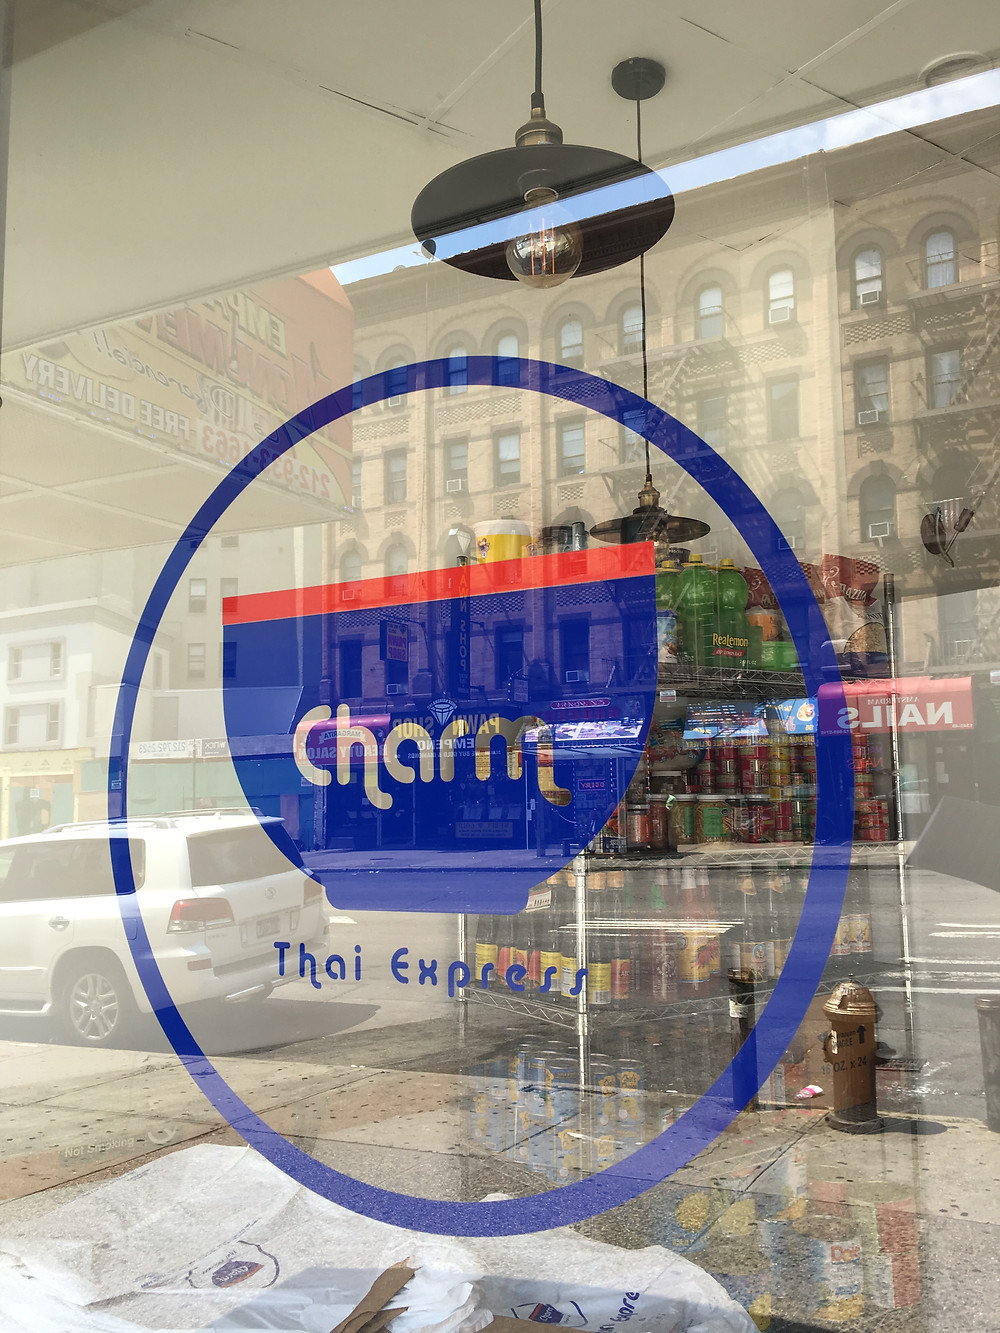 Charm Thai Express in Manhattanville